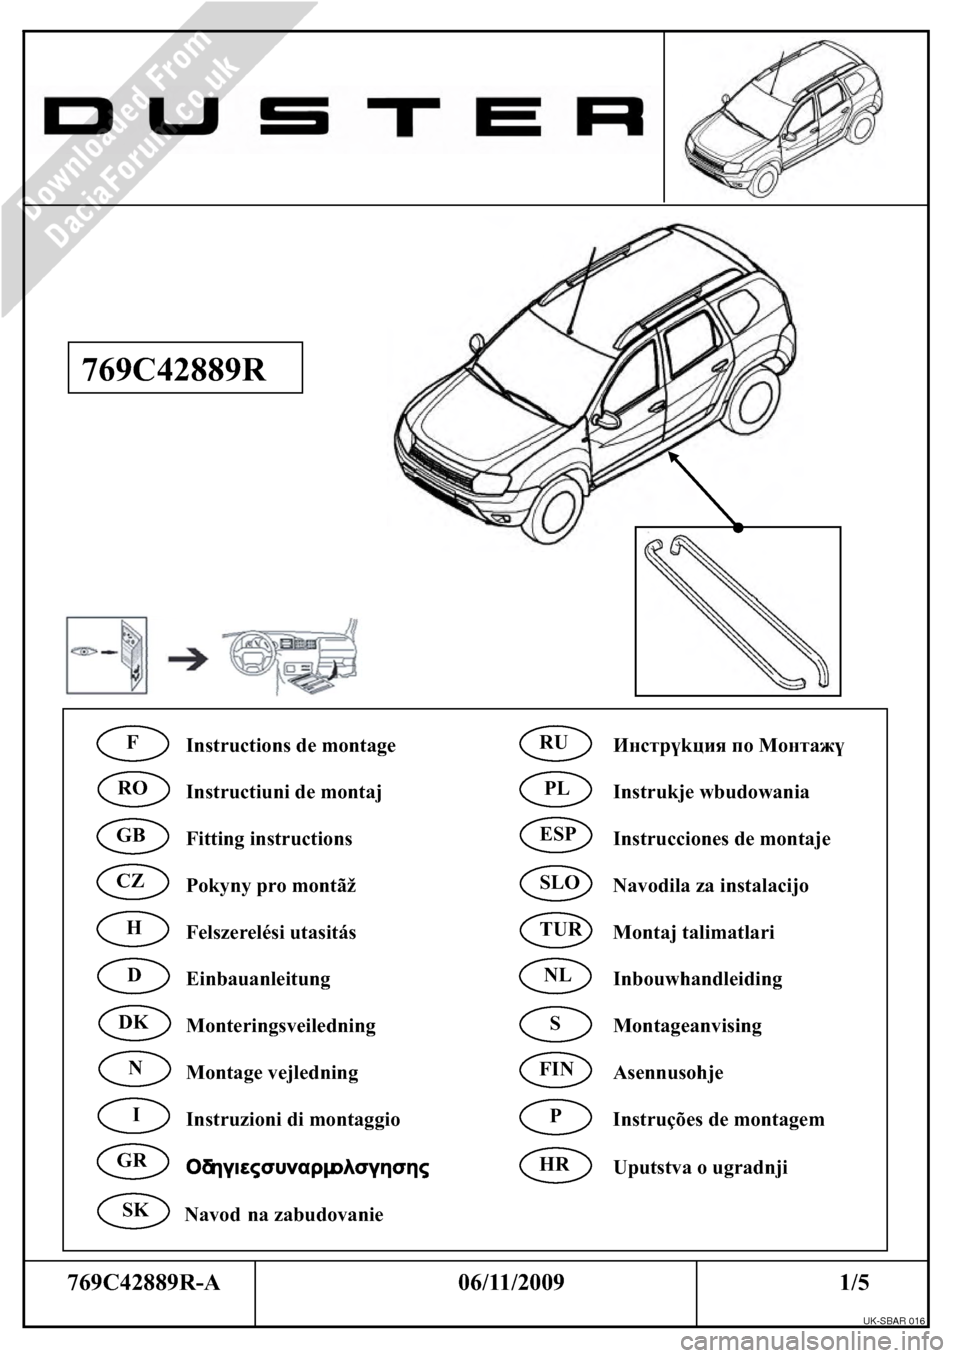 DACIA DUSTER 2010 1.G Side Styling Bars Fitting Guide Workshop Manual 769C42889R-A       06/11/2009                  1/5  769C42889R Instructions de montage Èíñòp?köèÿ ïî Moíòaæ? Instructiuni de montaj Instrukje wbudowania                         Fitting ins